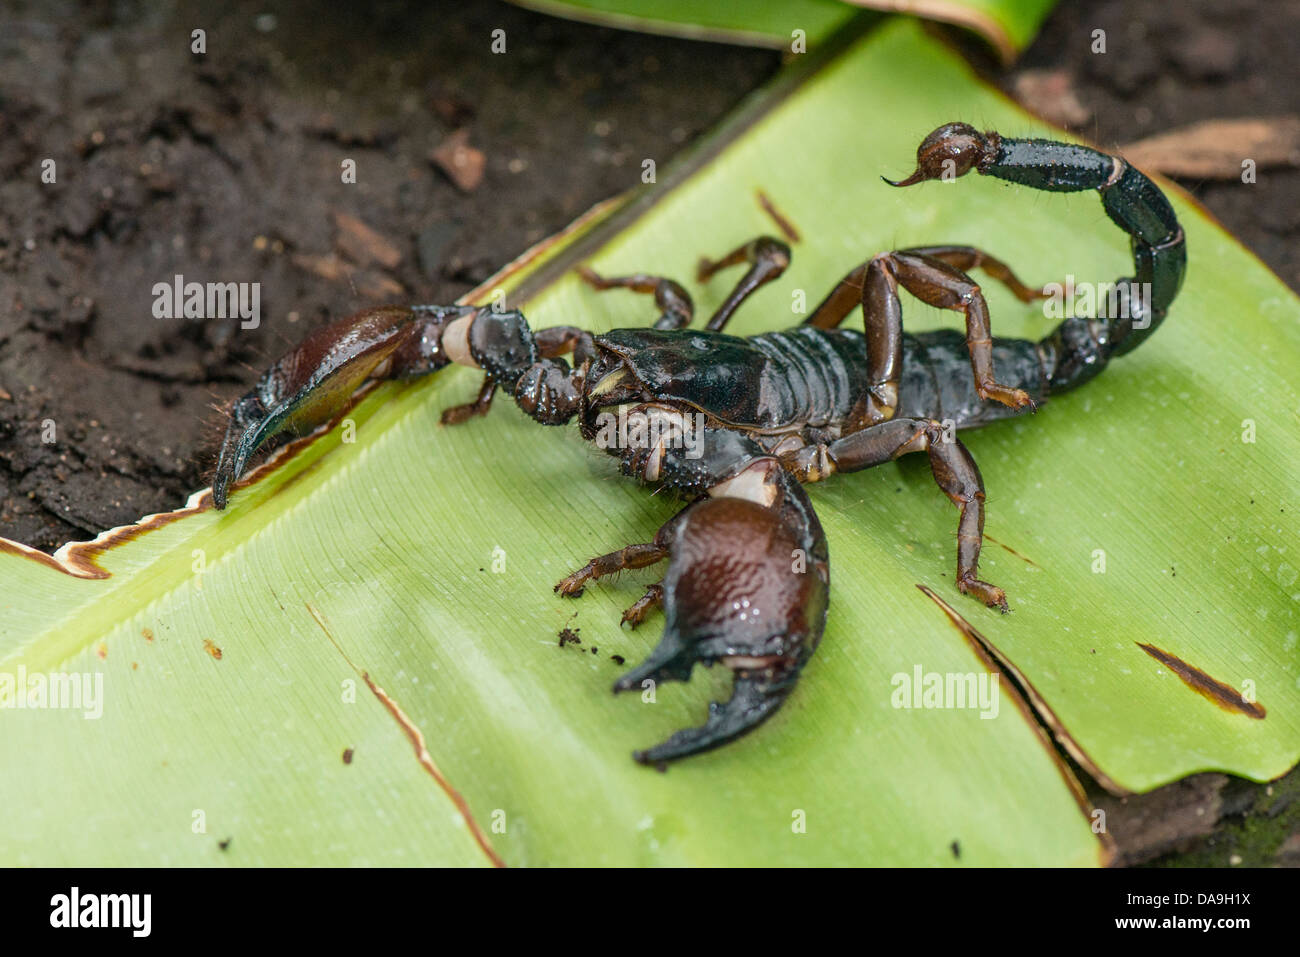 A Red Clawed scorpion - Stock Image